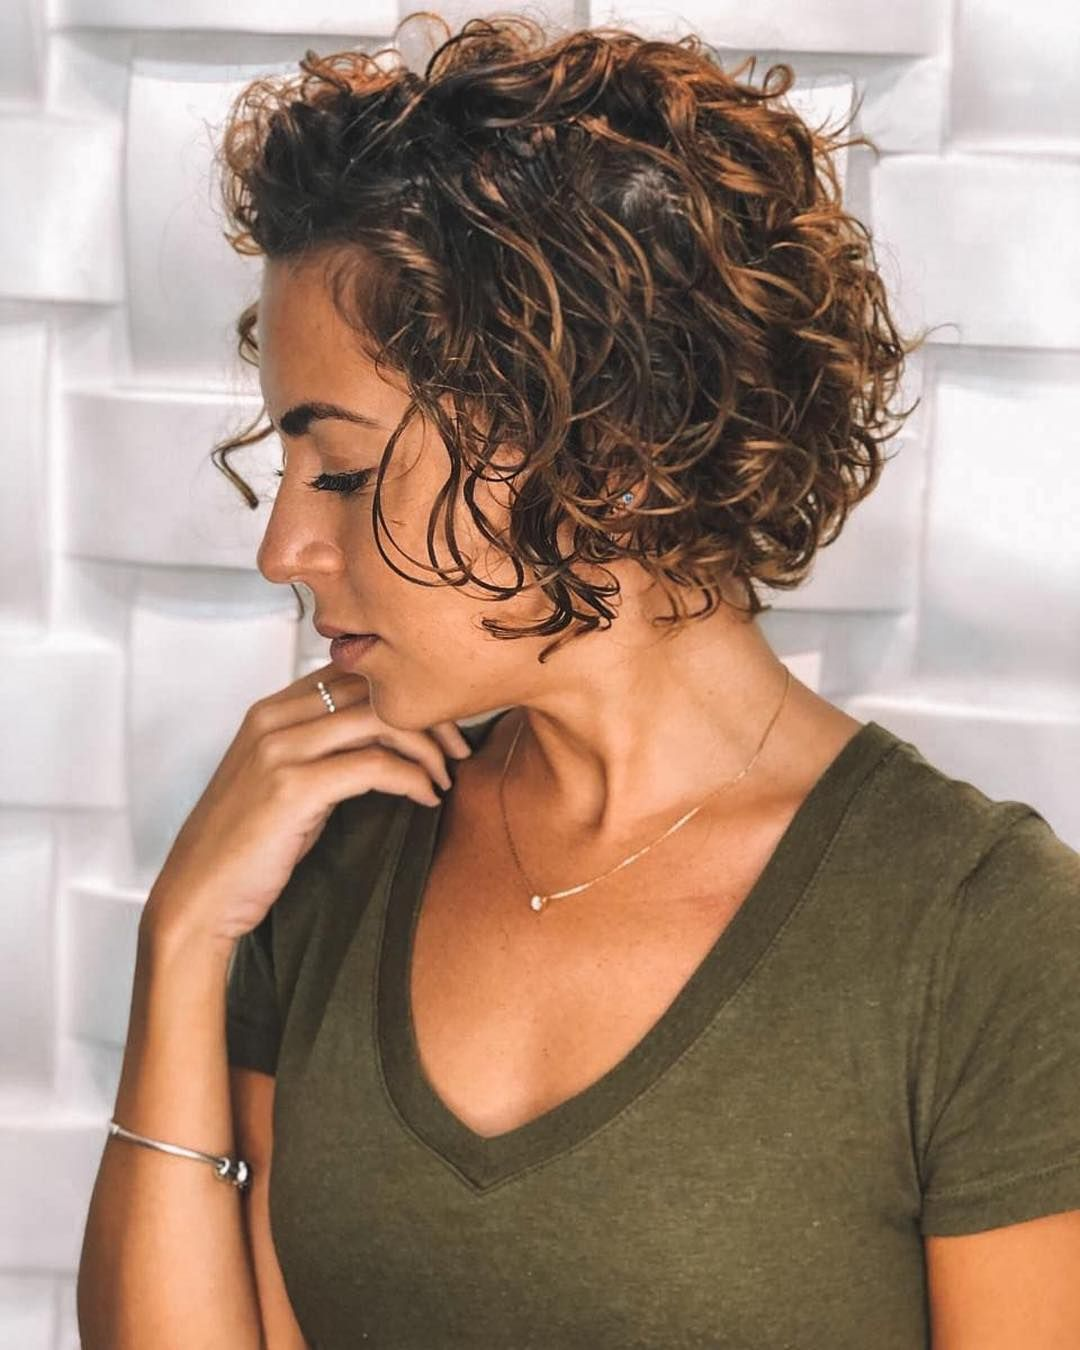 Latest Short Hairstyles for Women Over 50 (Updated 2021) 0da35207ced6f58dd65d45b0f2f3302a